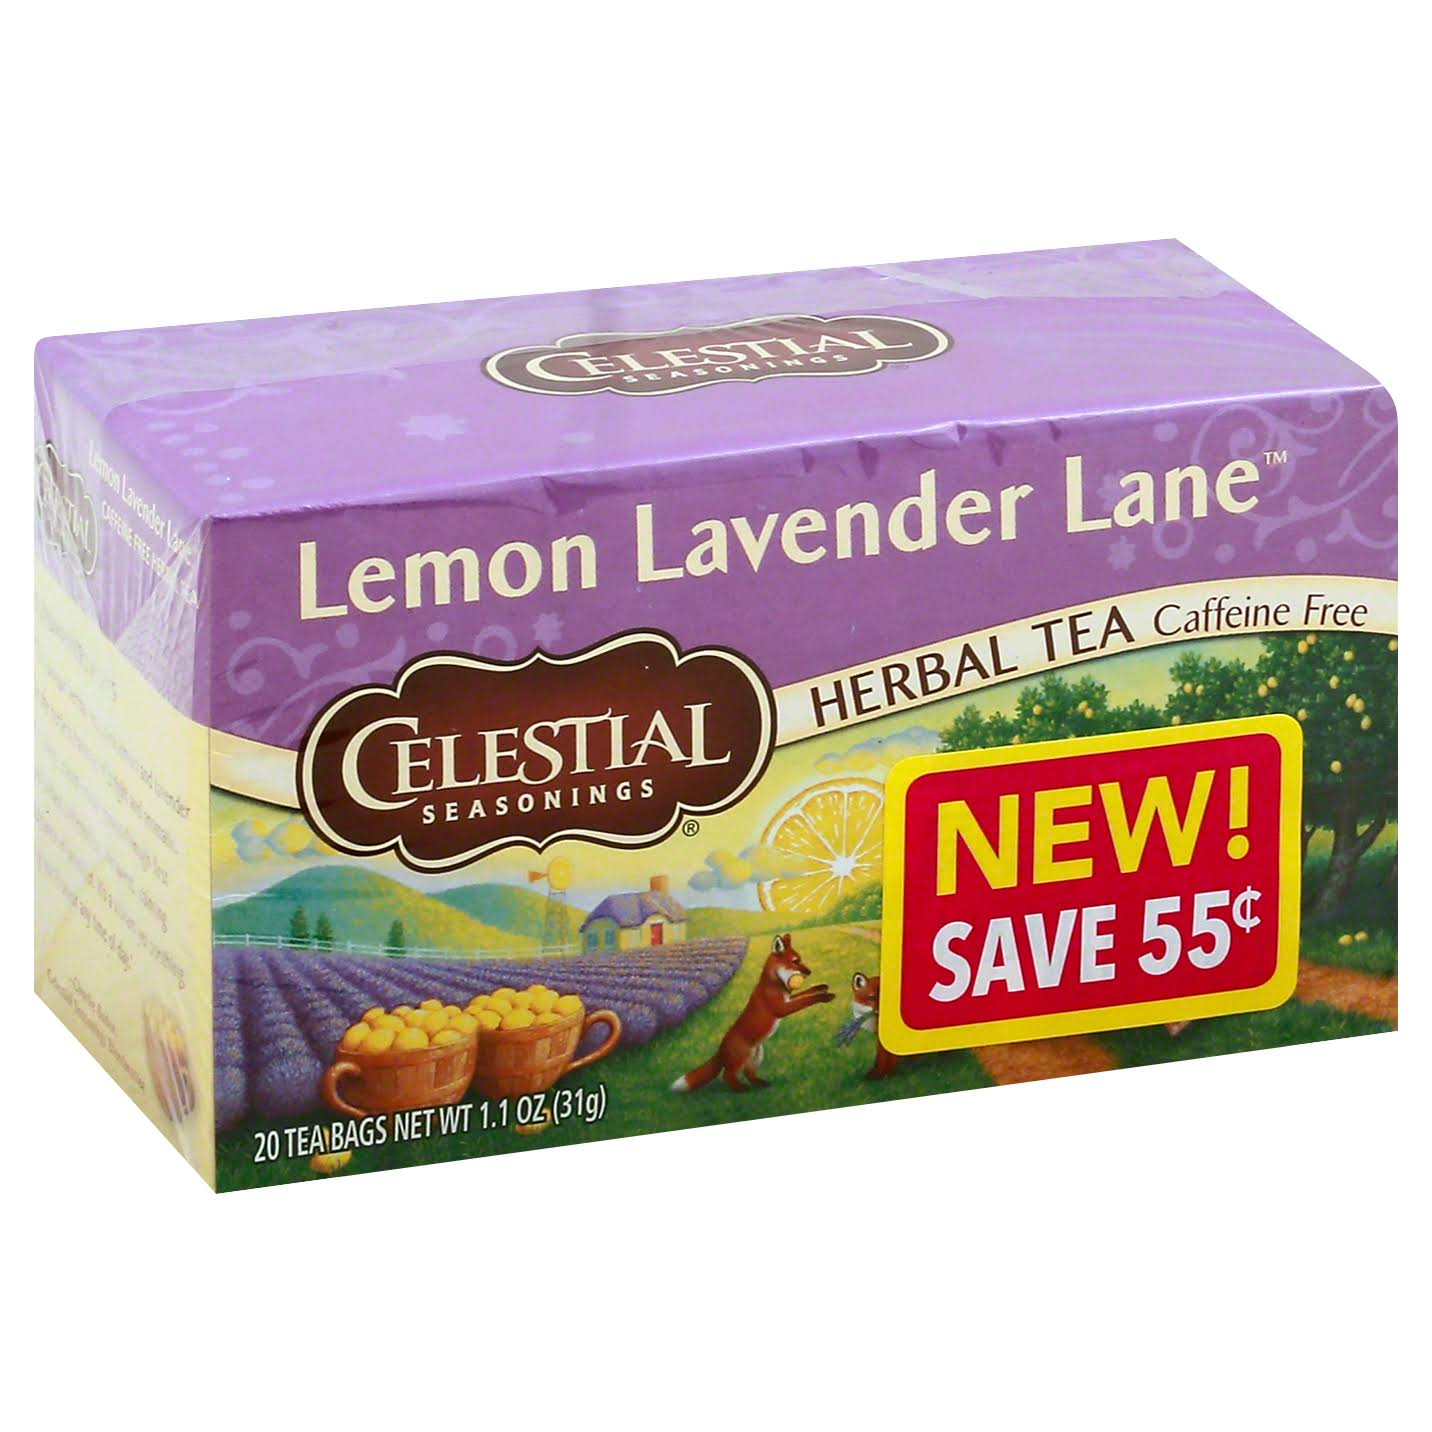 Celestial Seasonings Herbal Tea, Lemon Lavender Lane, Caffeine Free, Bags - 20 tea bags, 1.1 oz